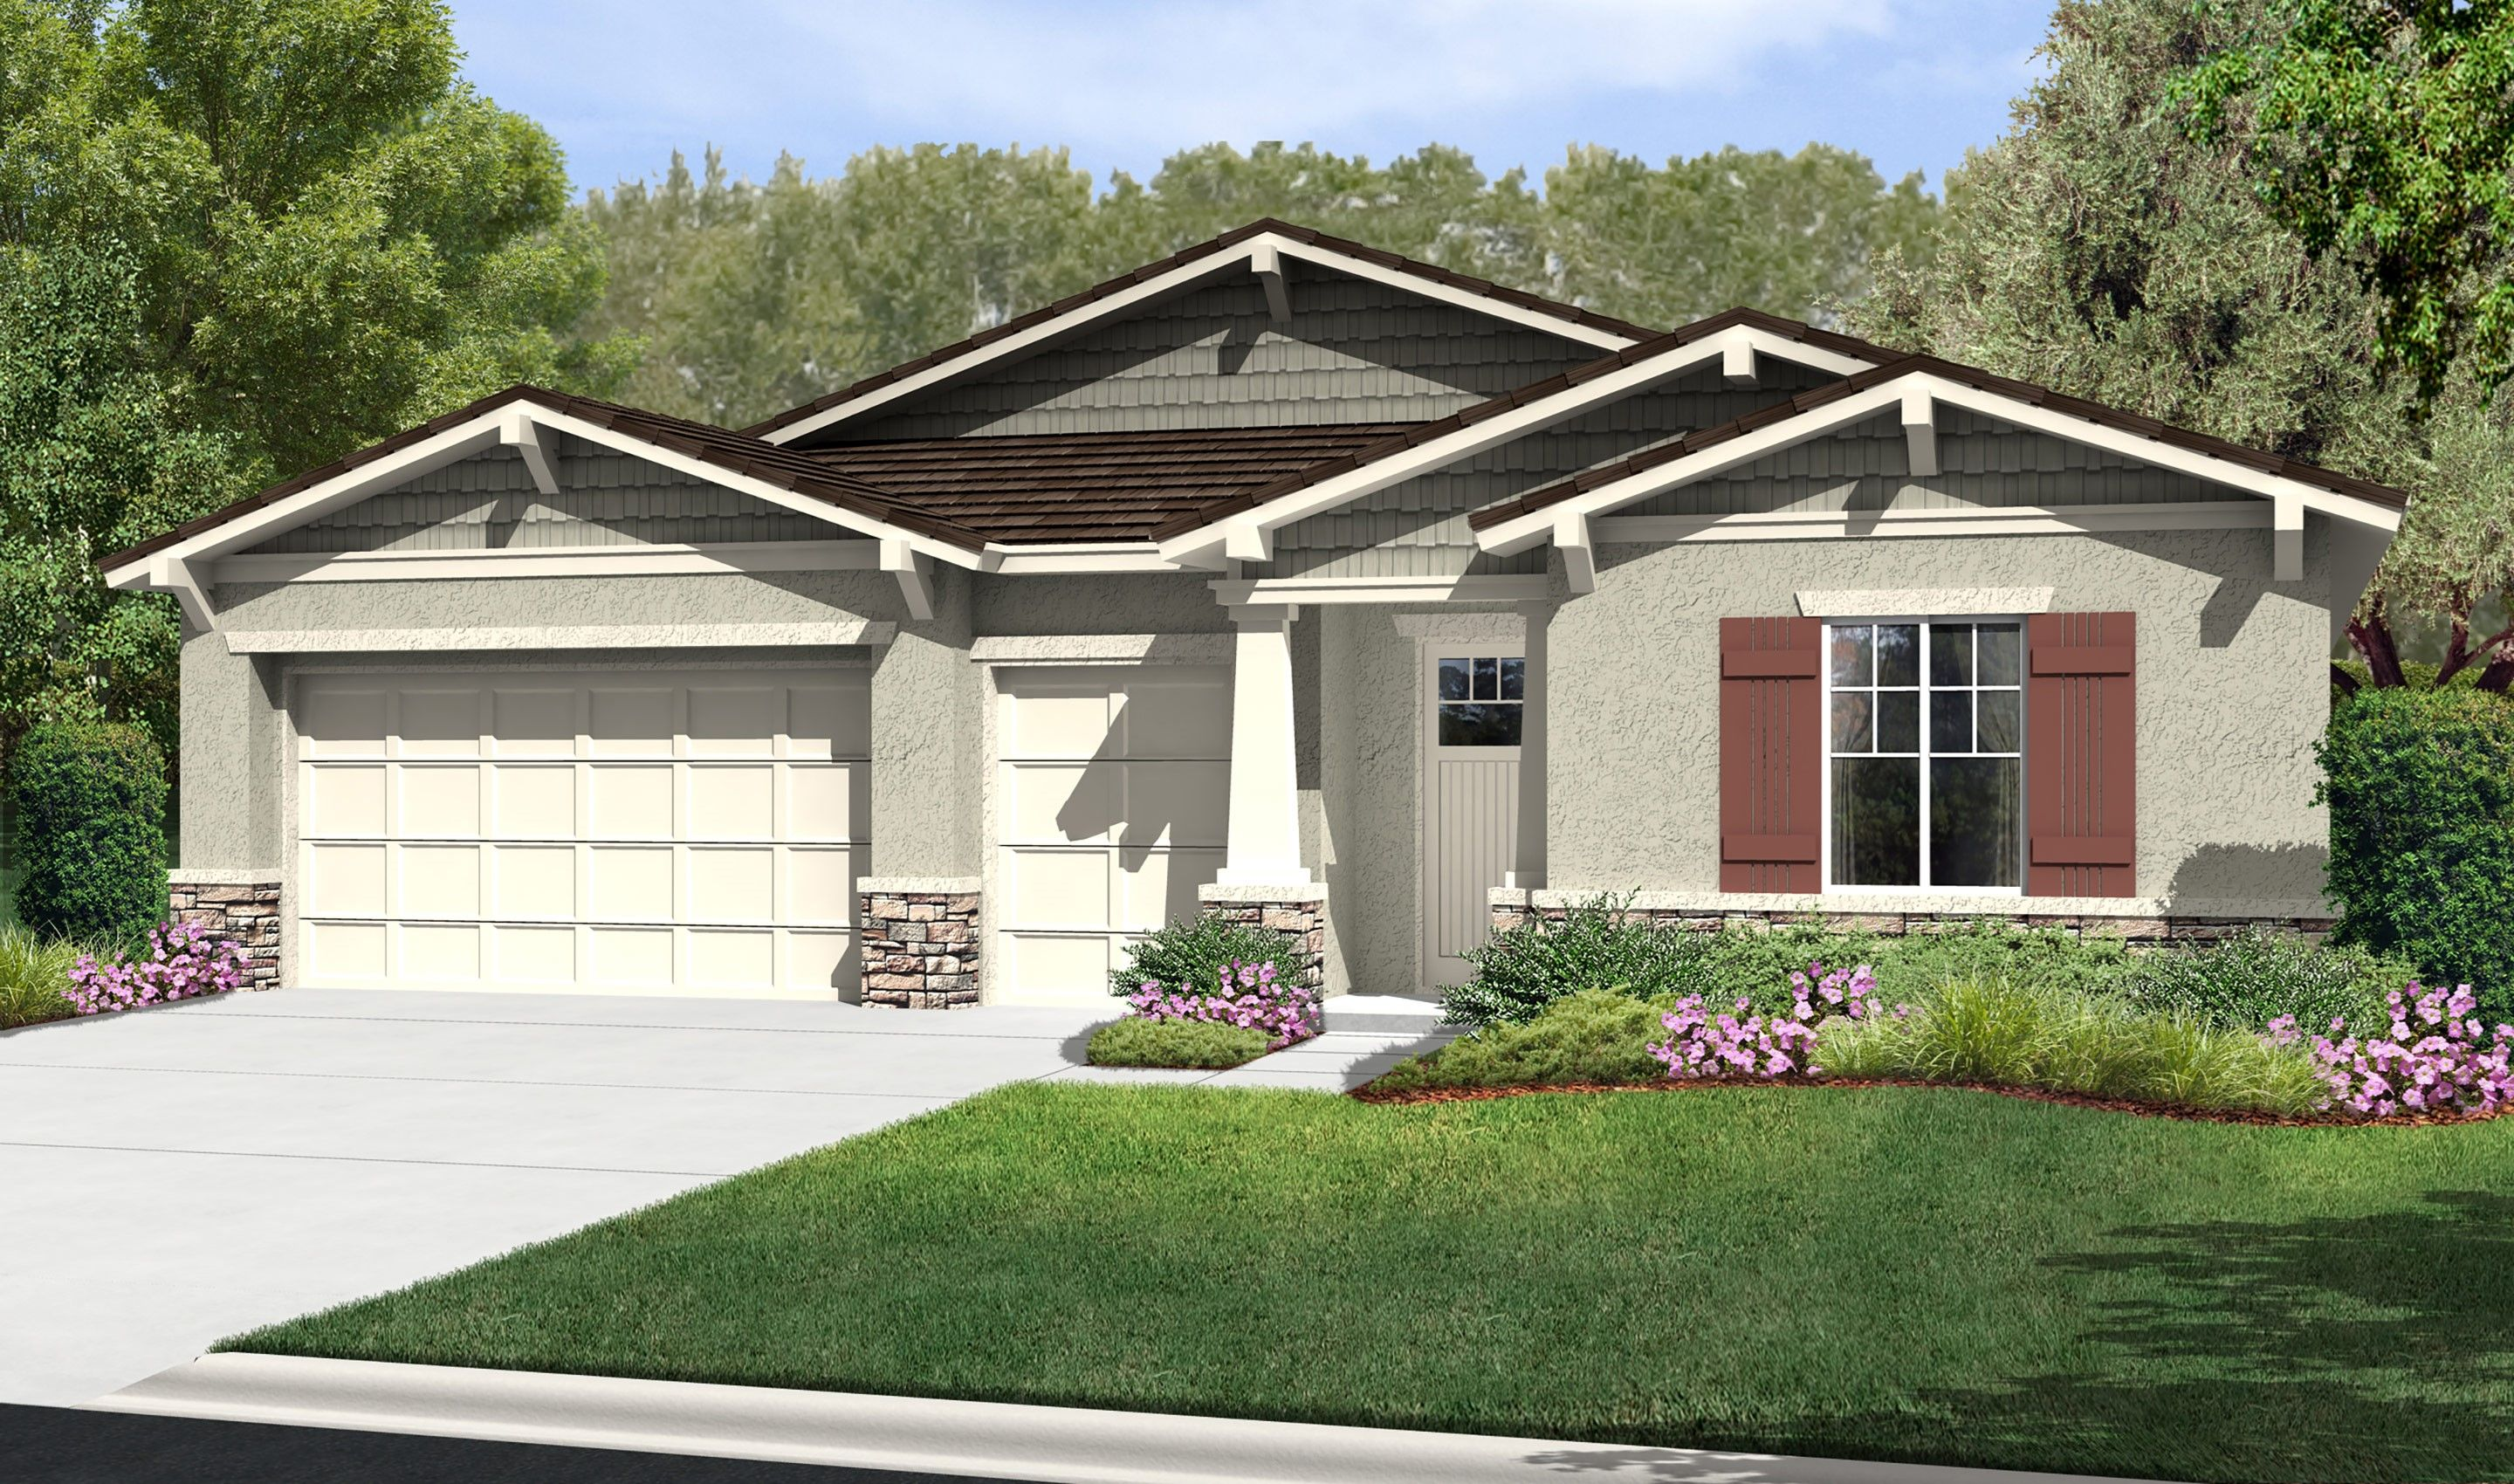 Single Family for Sale at Rosette 1608 Sams Canyon, Homesite 2 Beaumont, California 92223 United States